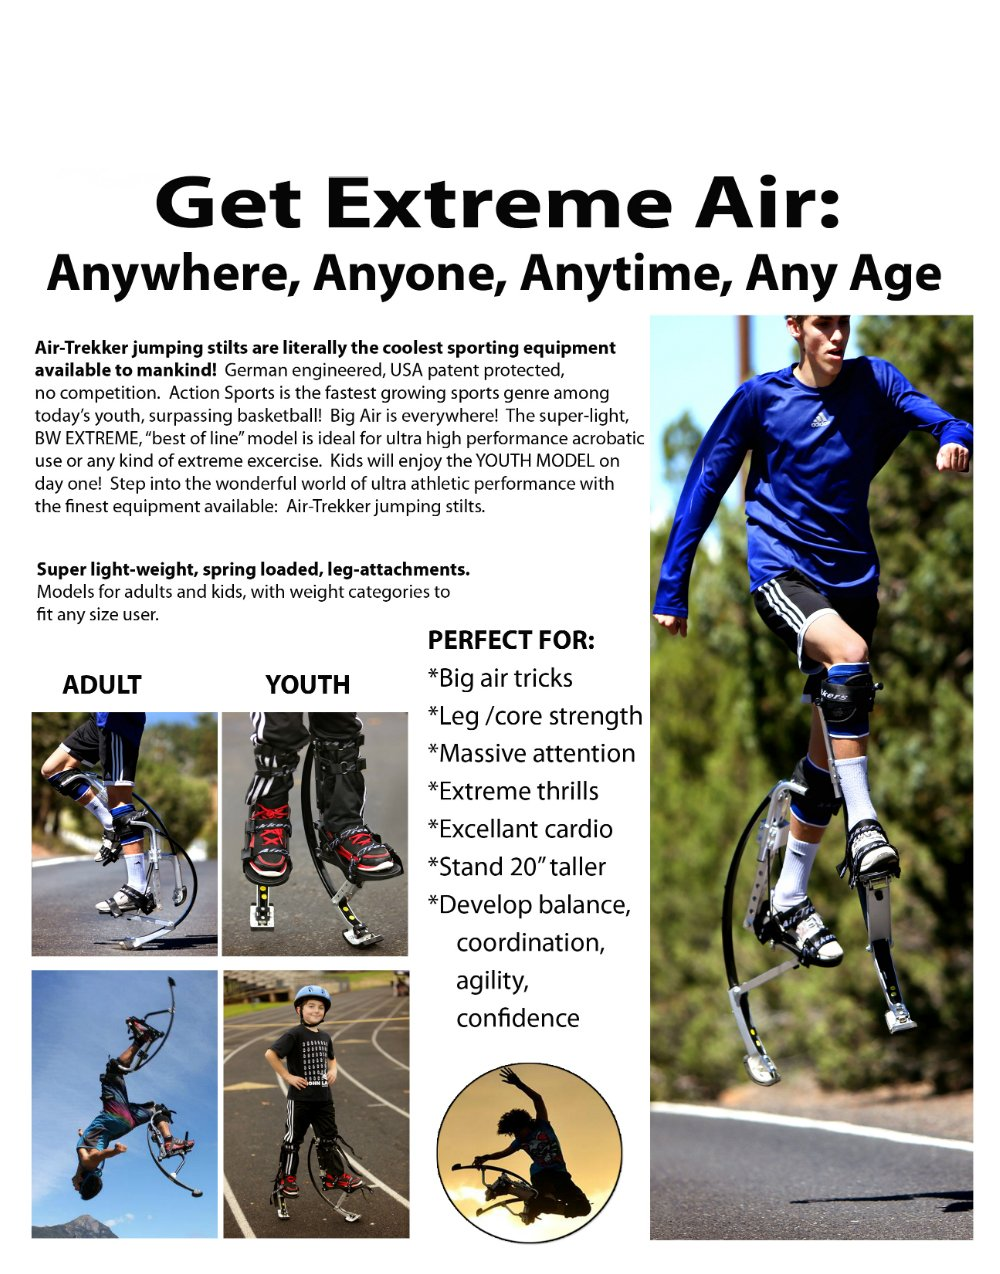 KIDS JUMPING STILTS by AIR TREKKERS Spring Loaded JUMP SHOES are Cool Gifts for Kids Ages 8-12 Develop Valuable Athletic Motor Skills! BOUNCE SHOES FOR KIDS with PROTECTION PADS and Cloth KNEE SUPPORT by Air-Trekkers (Image #5)